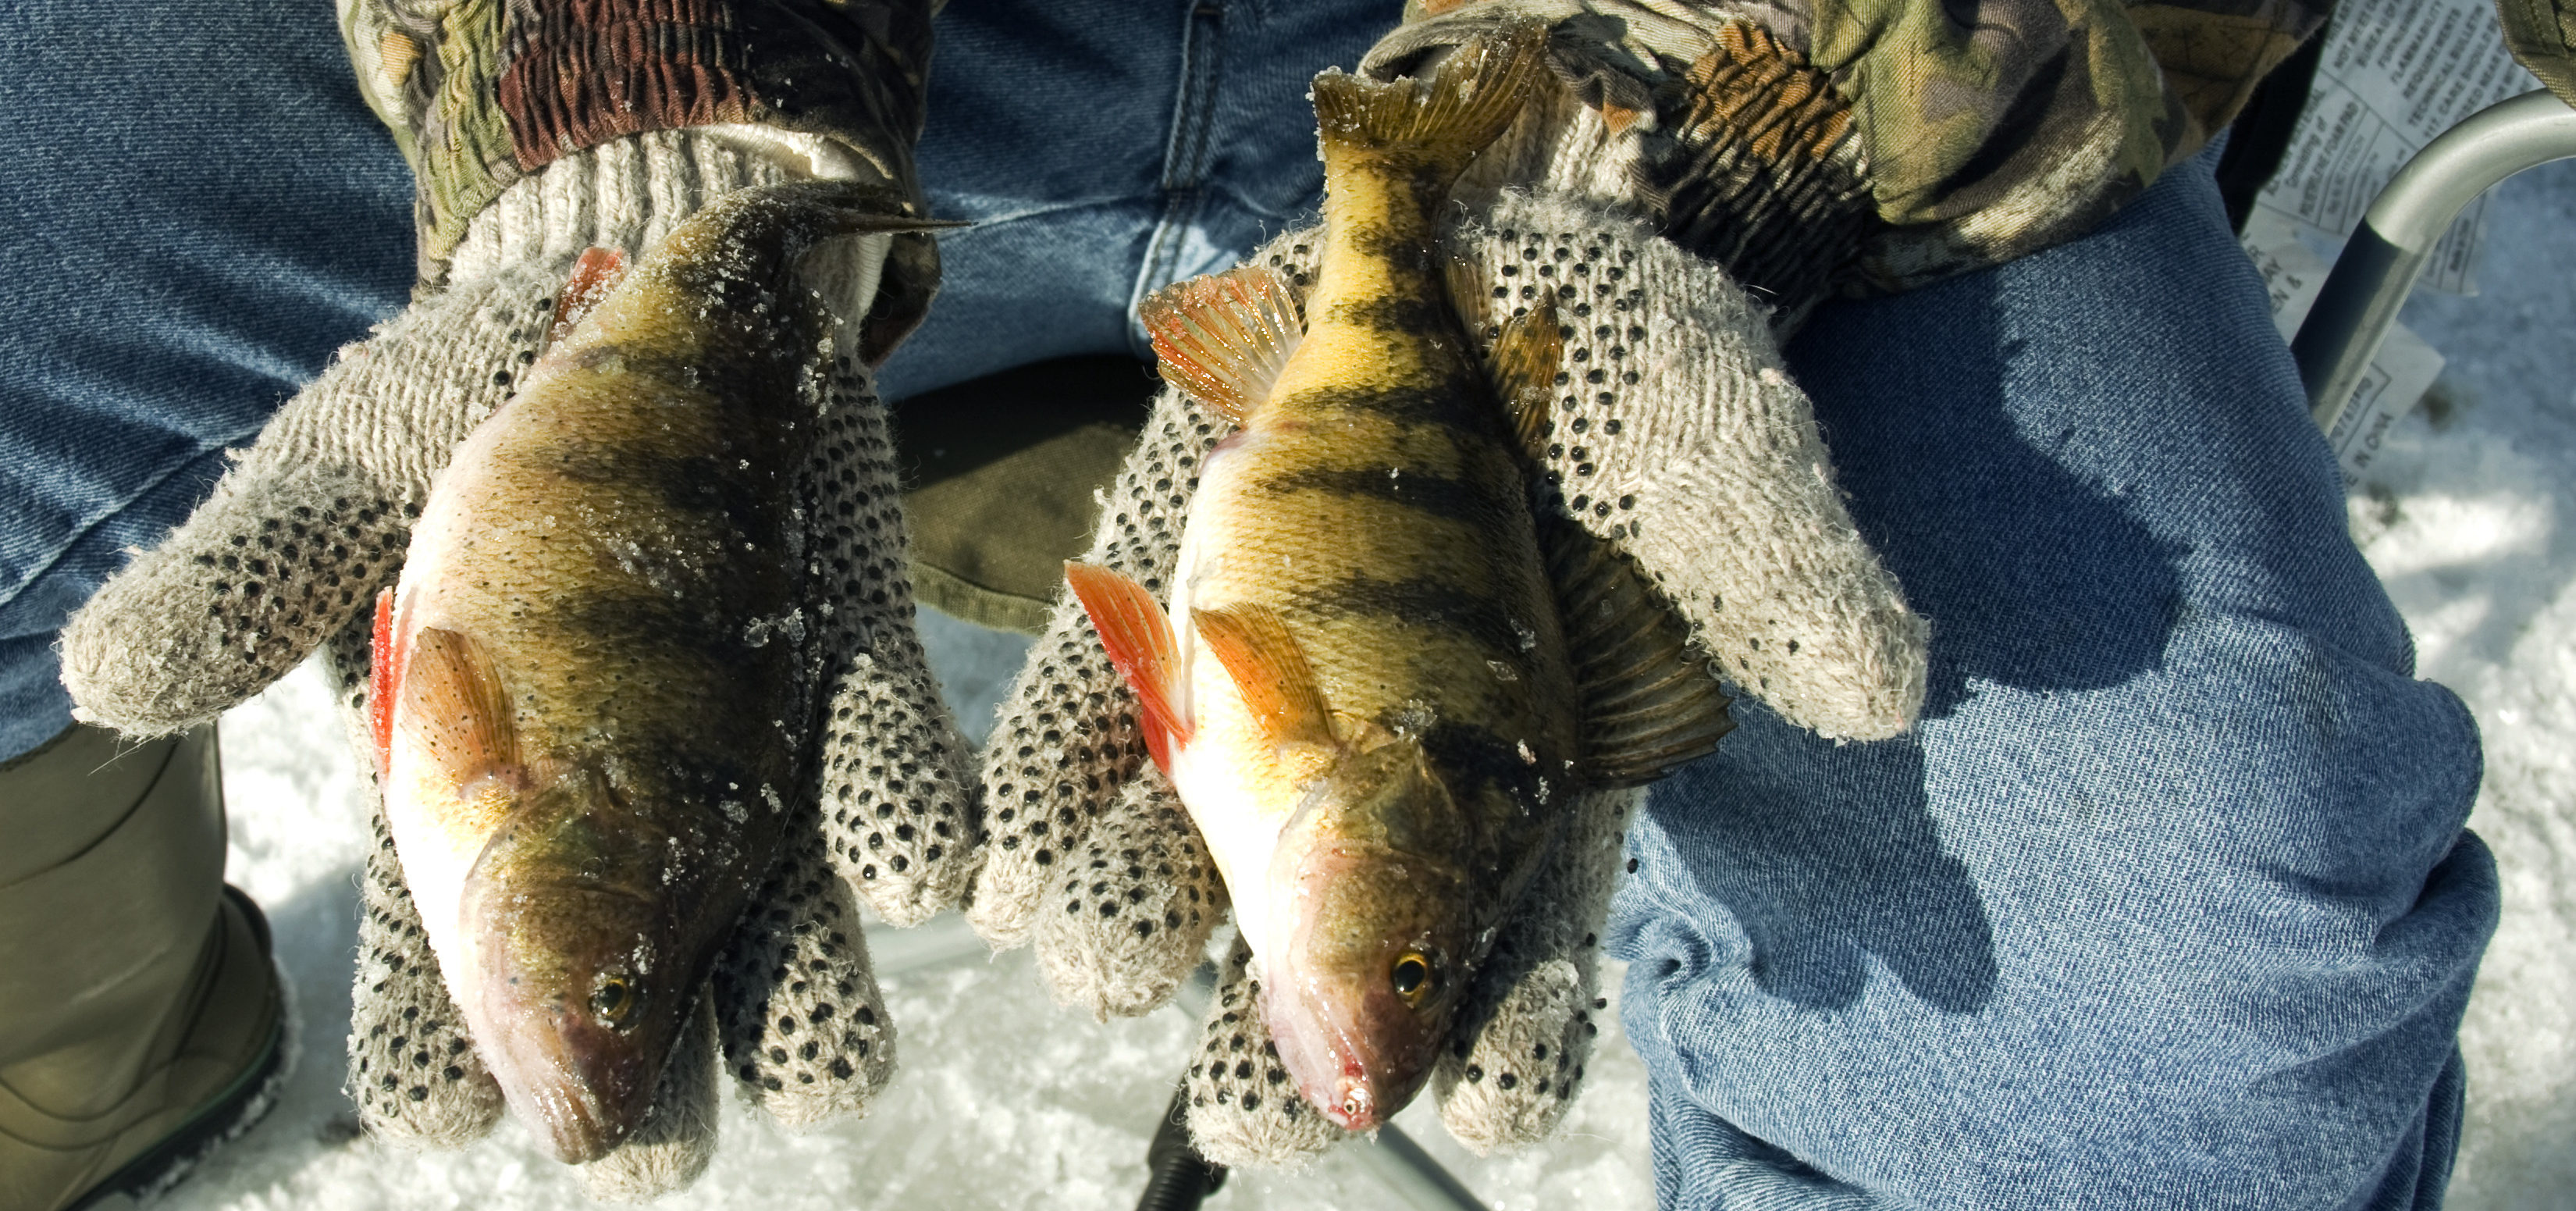 Catch Limits Up For Perch, Walleye In Lake Erie